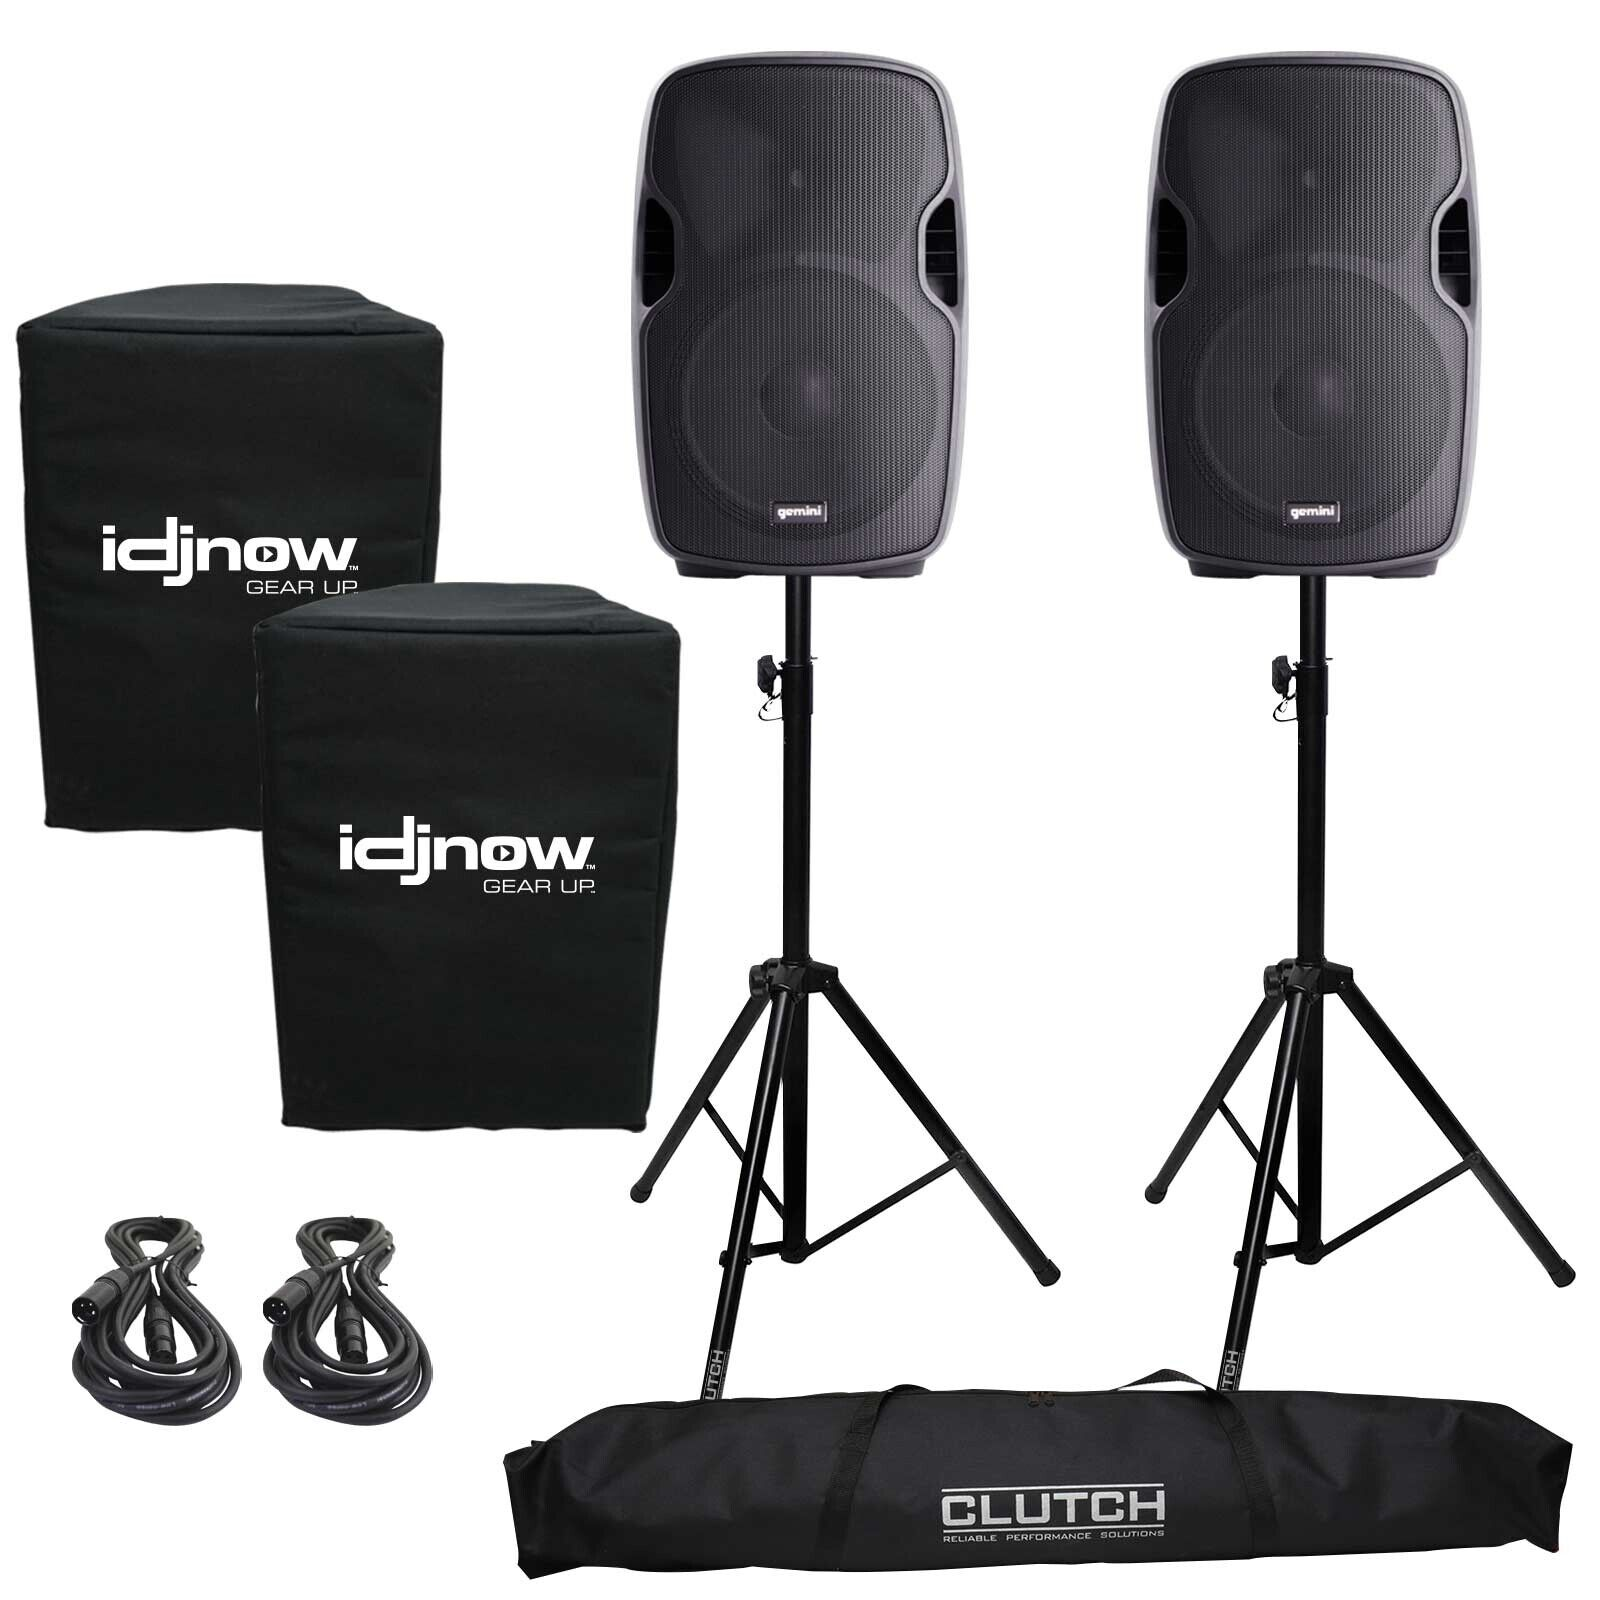 Gemini AS-1200P Active/Powered Portable DJ PA Speaker System Stands and Covers. Buy it now for 296.80